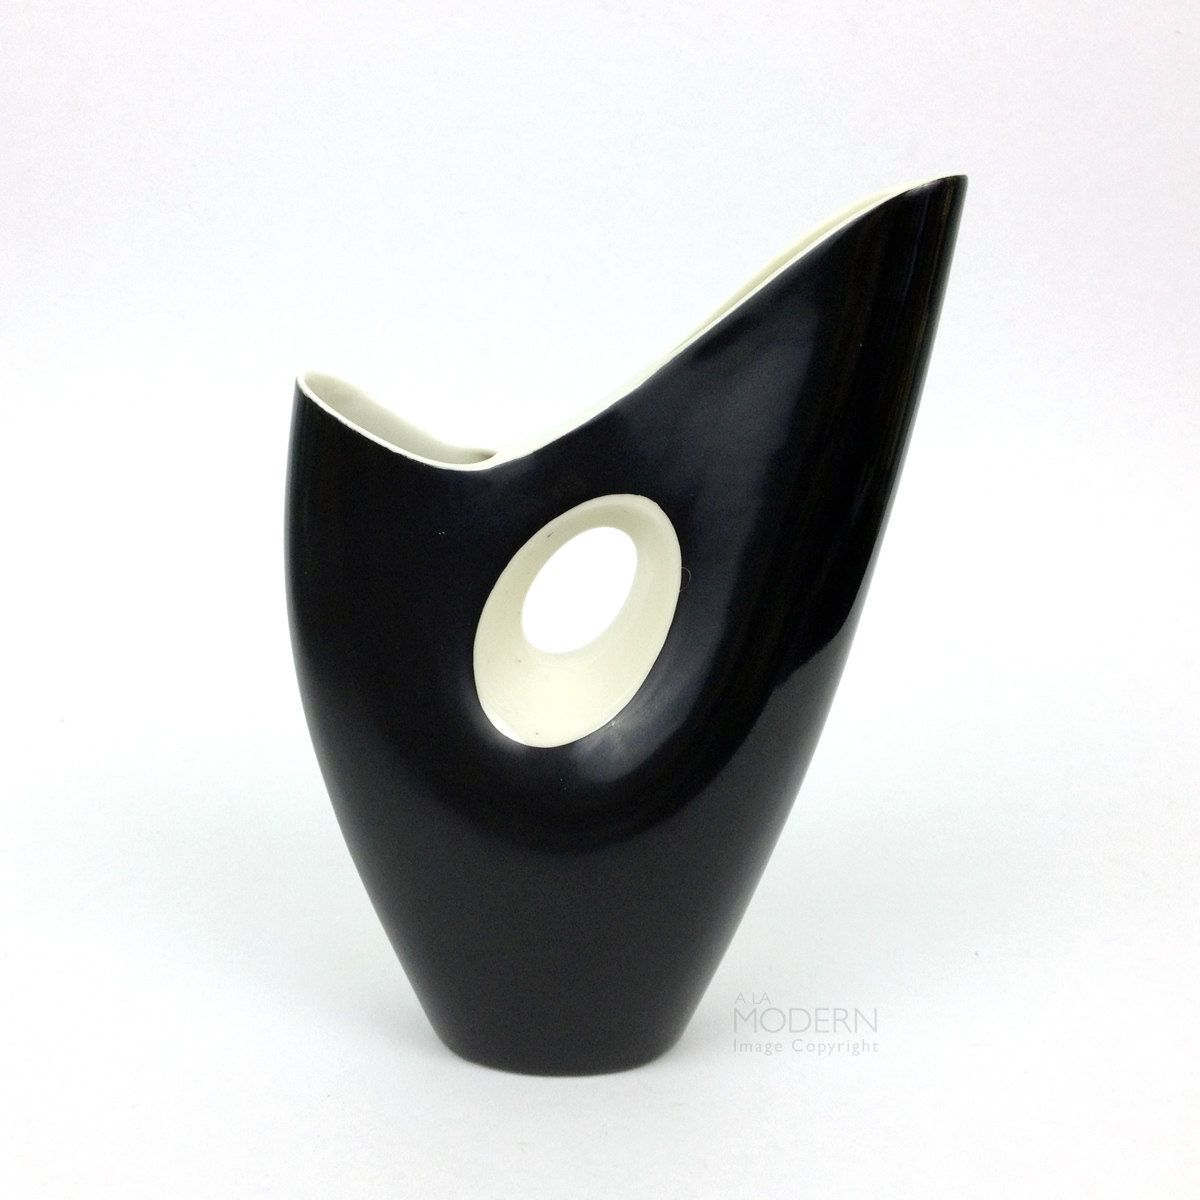 Vintage cmielow style modern black and white double spout ceramic vintage cmielow style modern black and white double spout ceramic vase reviewsmspy